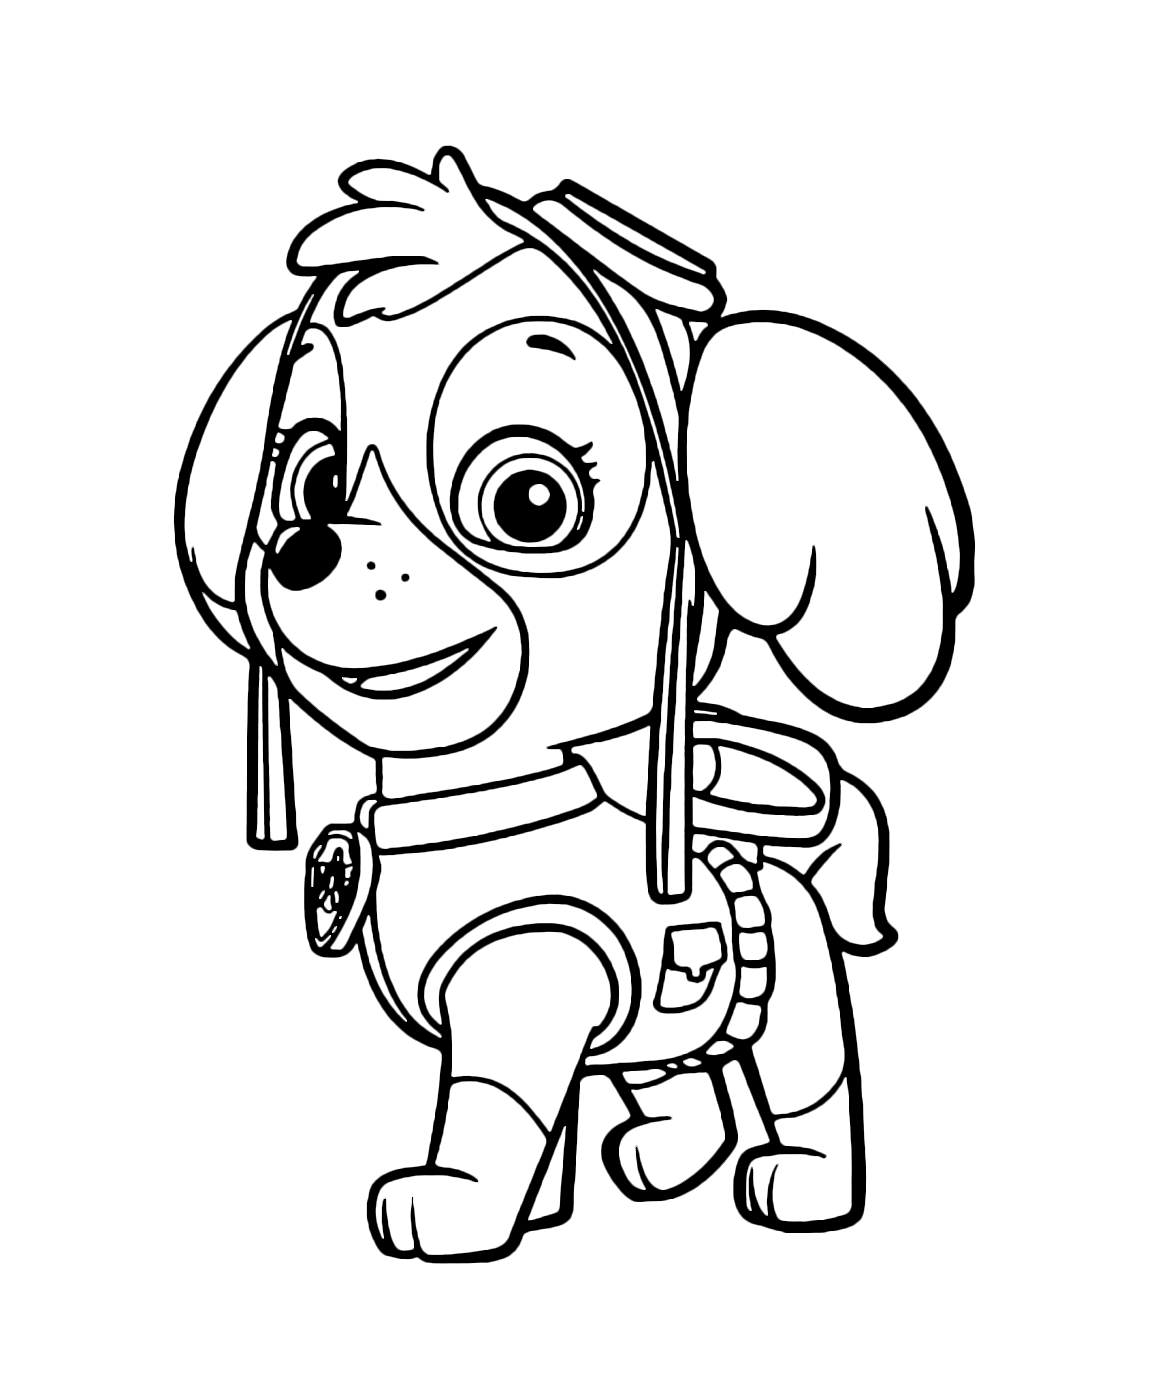 mission paw coloring pages paw patrol rubble runs to his mission pages paw mission coloring